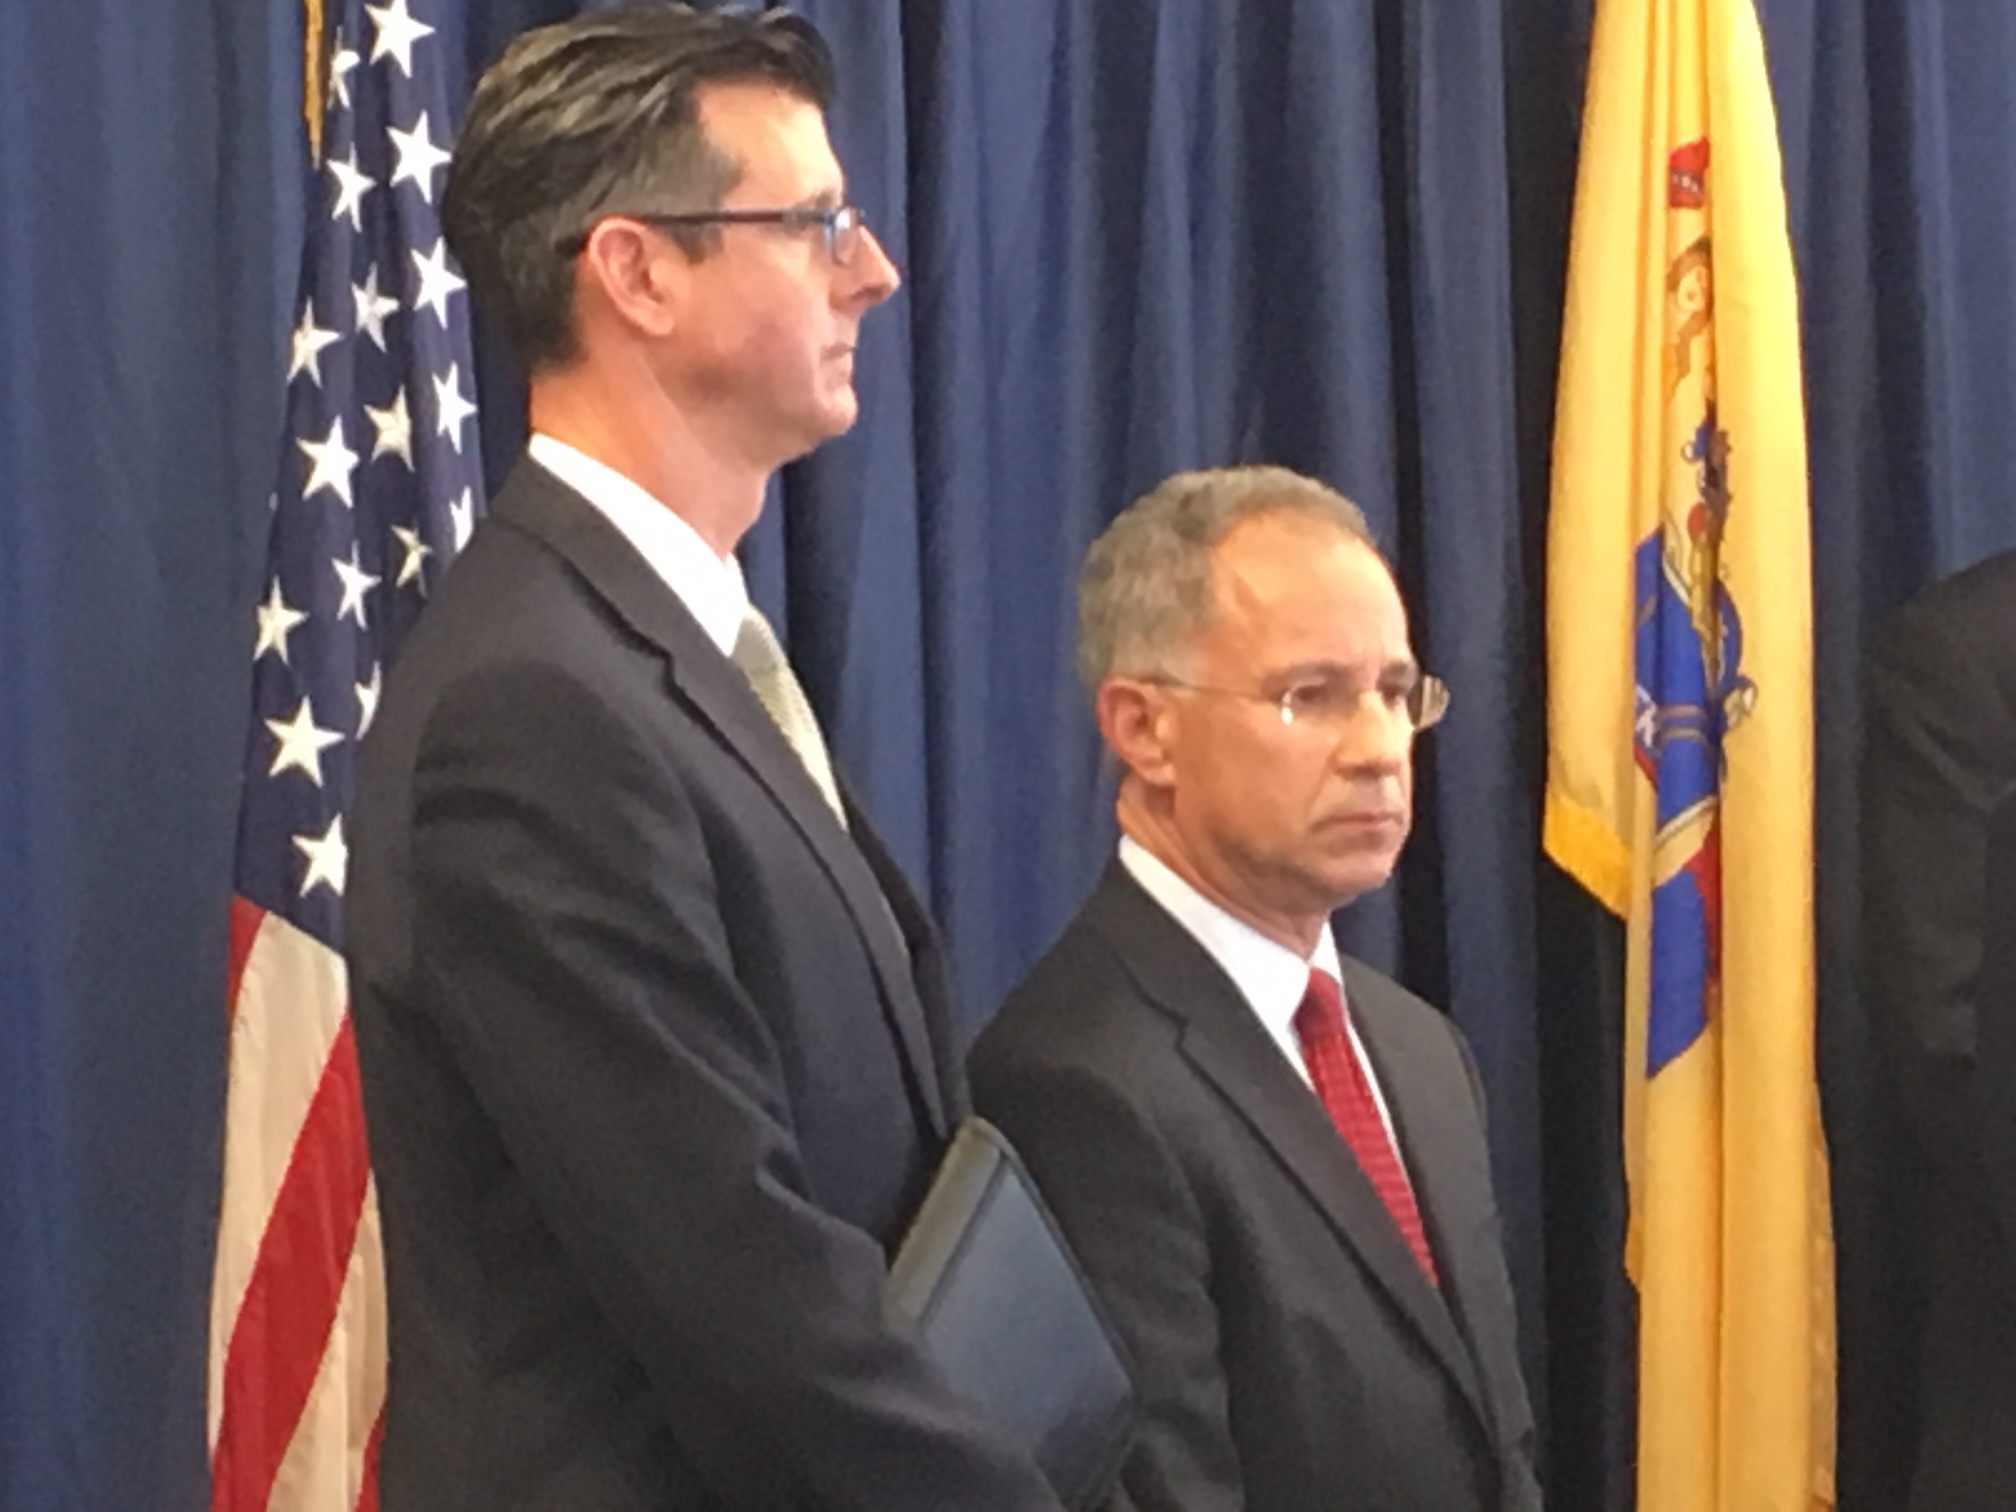 Fishman (right) during today's press conference following Samson's plea.